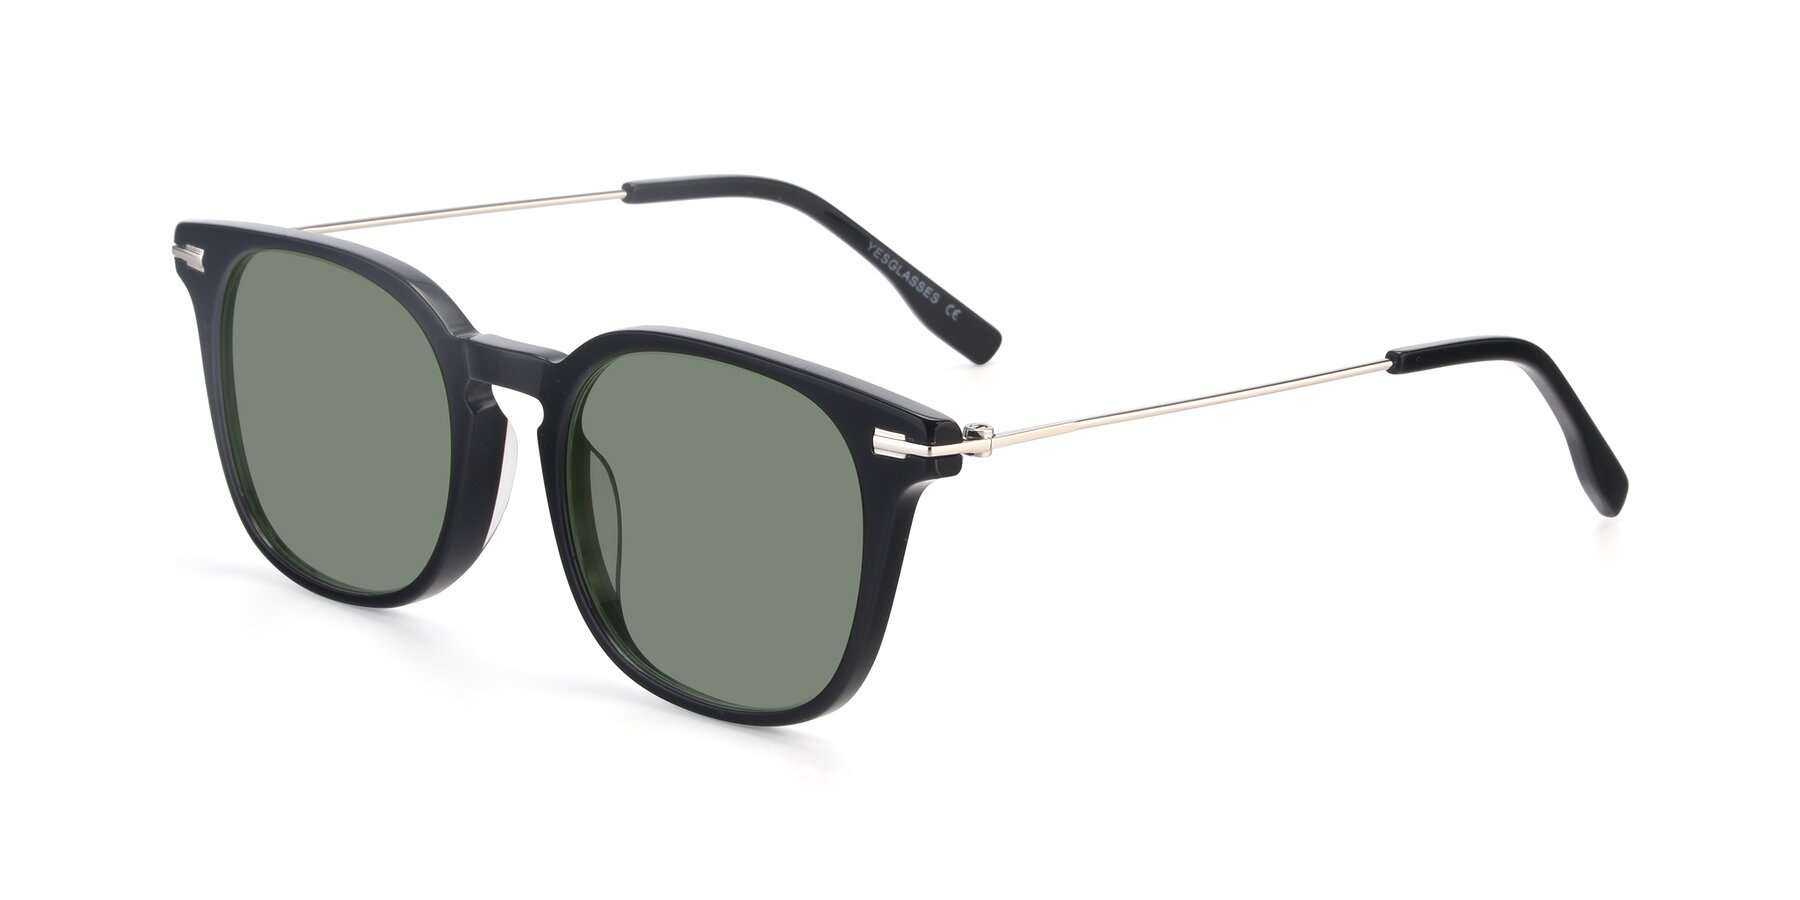 Angle of 17711 in Black with Medium Green Tinted Lenses